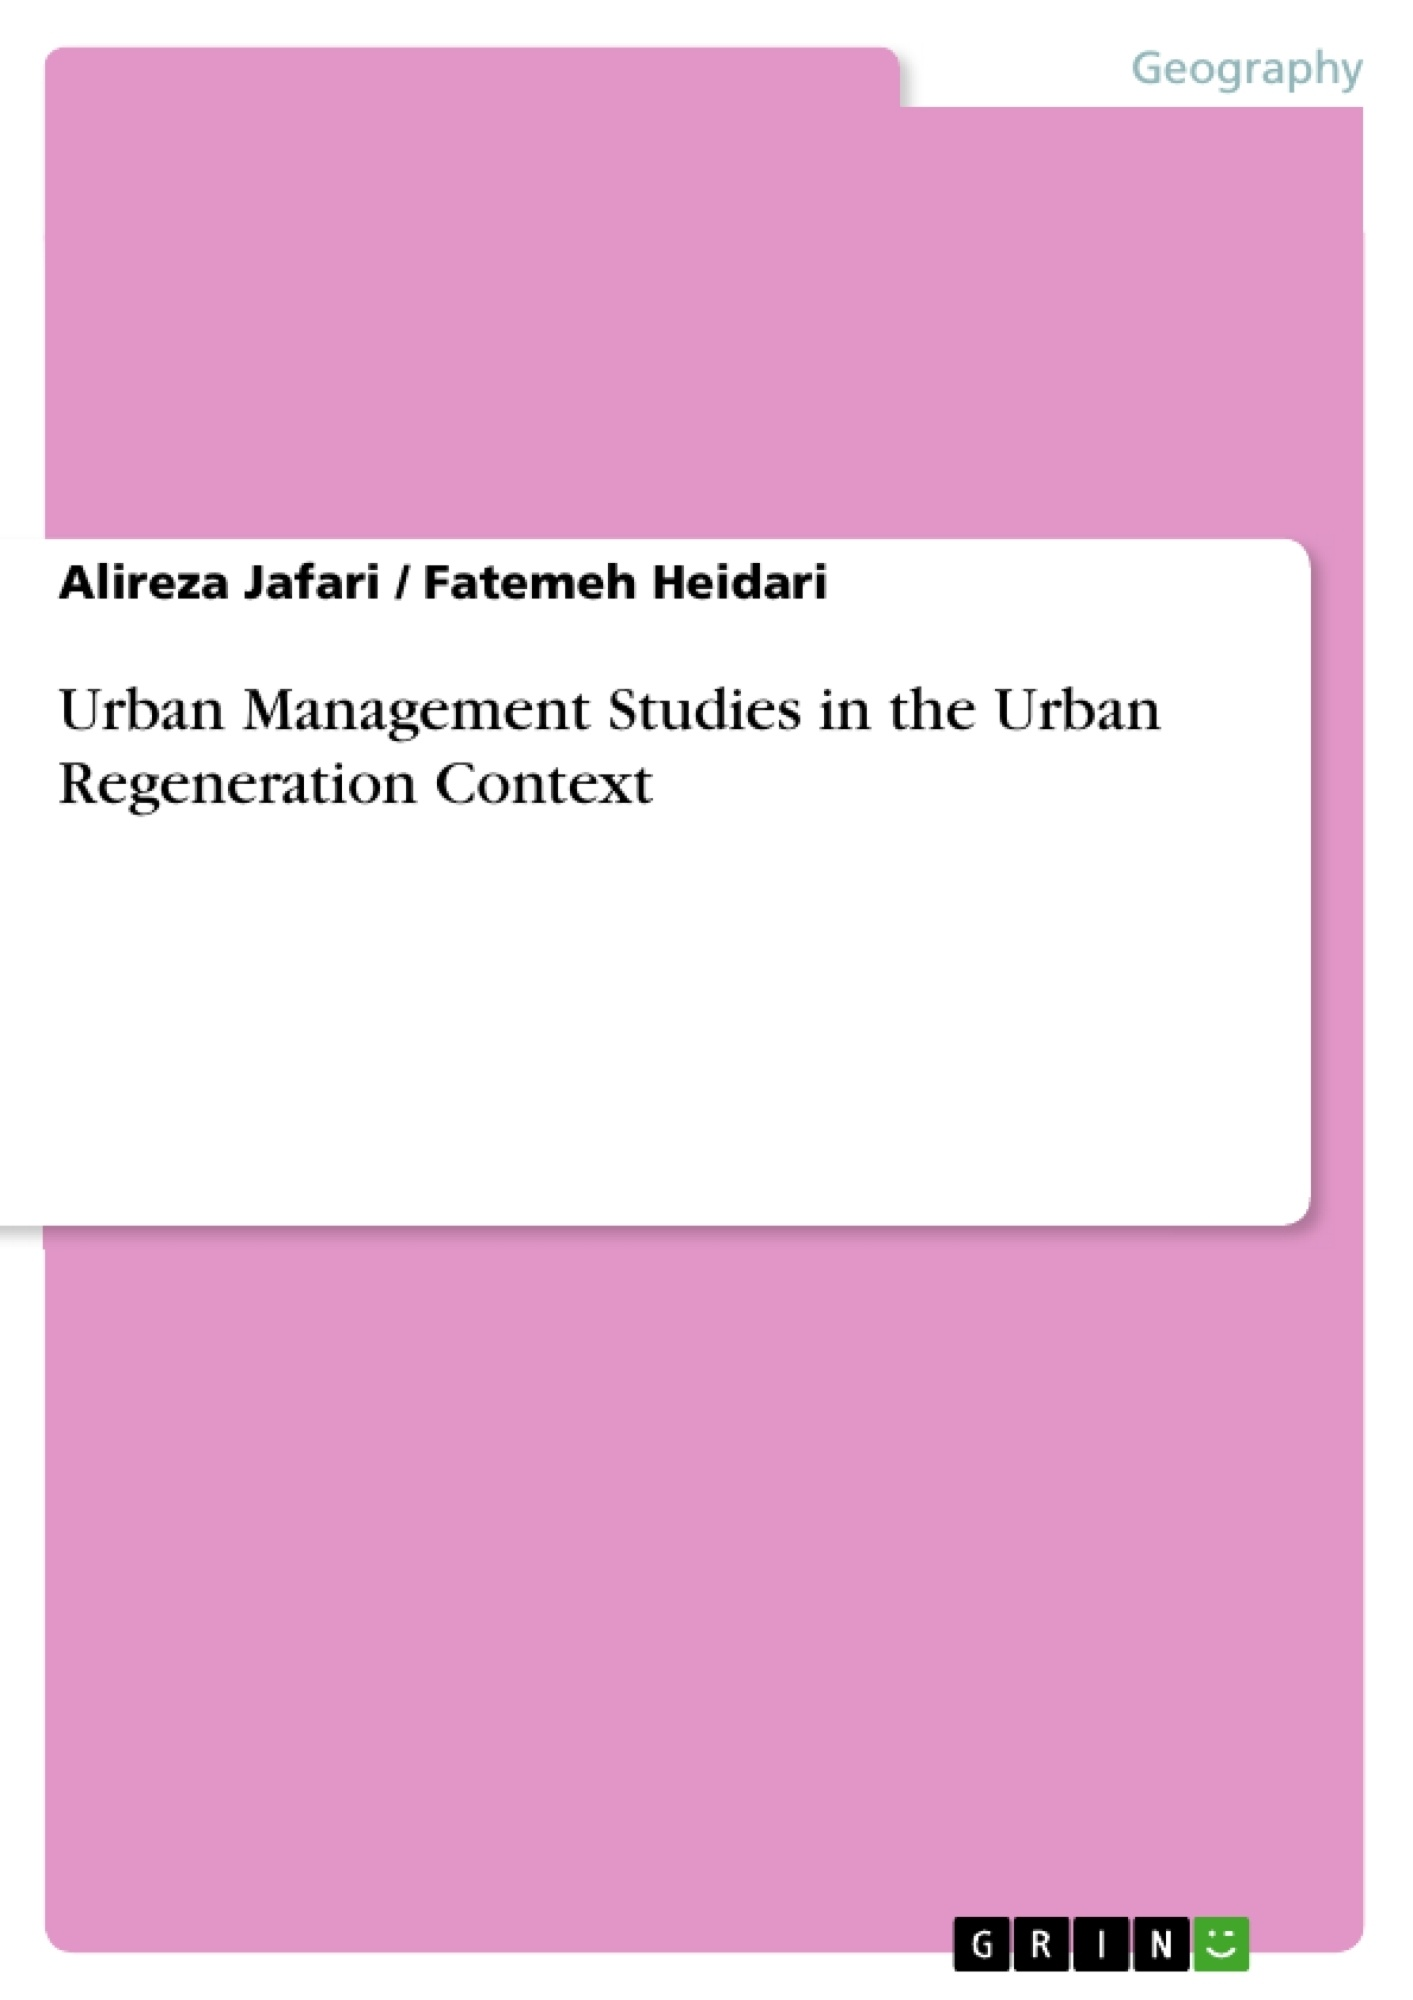 Title: Urban Management Studies in the Urban Regeneration Context